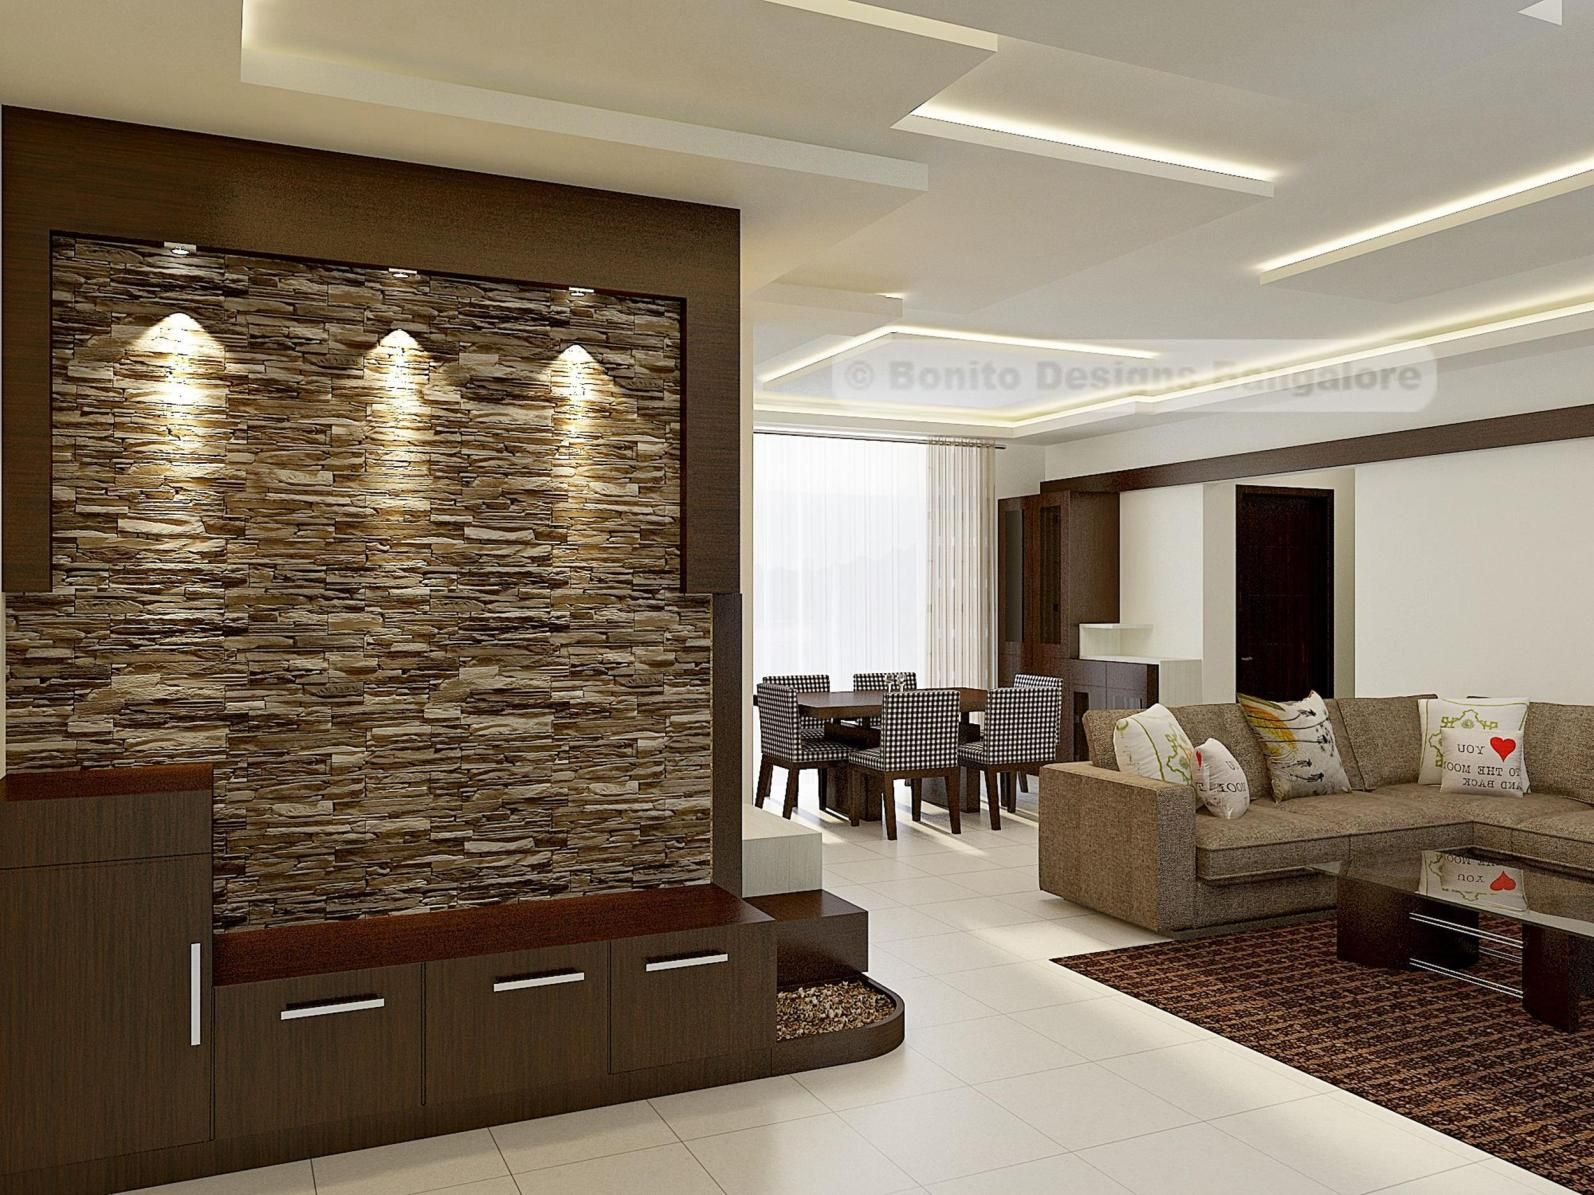 38 Perfect Living Room Smooth Stone Interior Walls Ideas Decor Renewal Stone Walls Interior Wall Cladding Designs Stone Cladding Interior